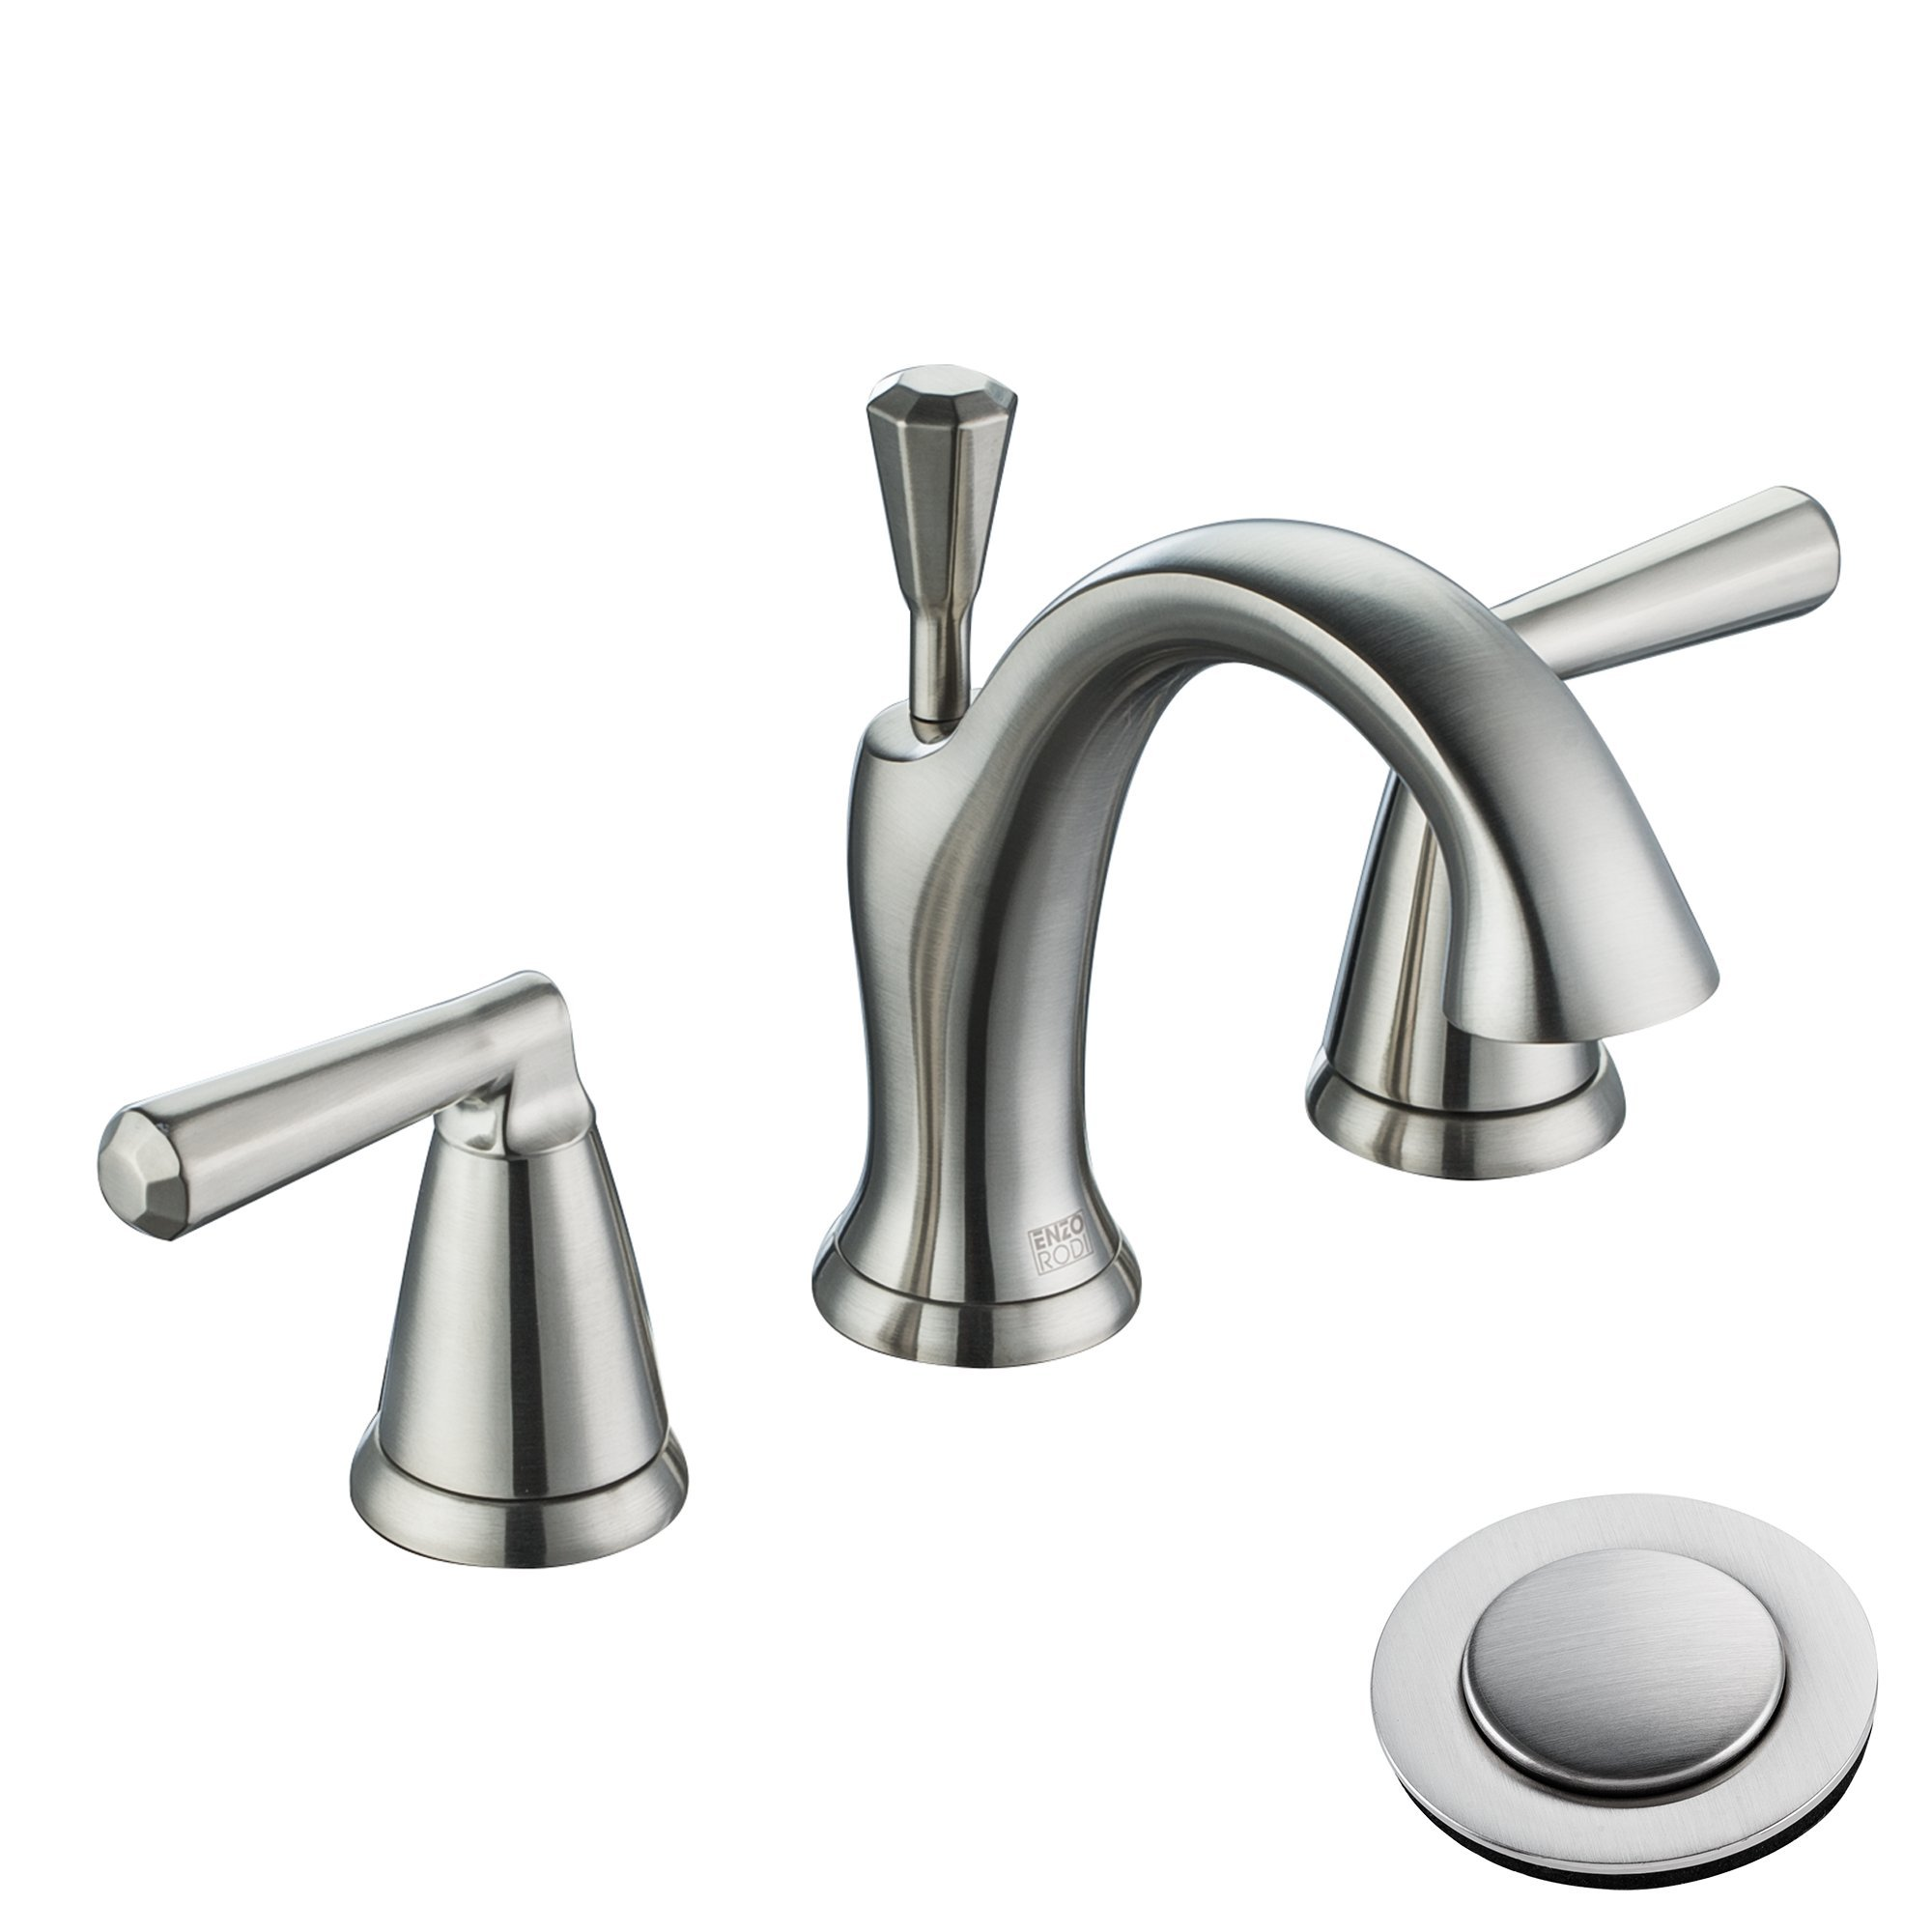 Enzo Rodi Two-handle Low-arc Lead-free Brass Widespread Bathroom Faucet with Ceramic Valve and Full-copper Lift Pop Up Drain Assembly, Brushed Nickel PVD, ERF2212254AP-10